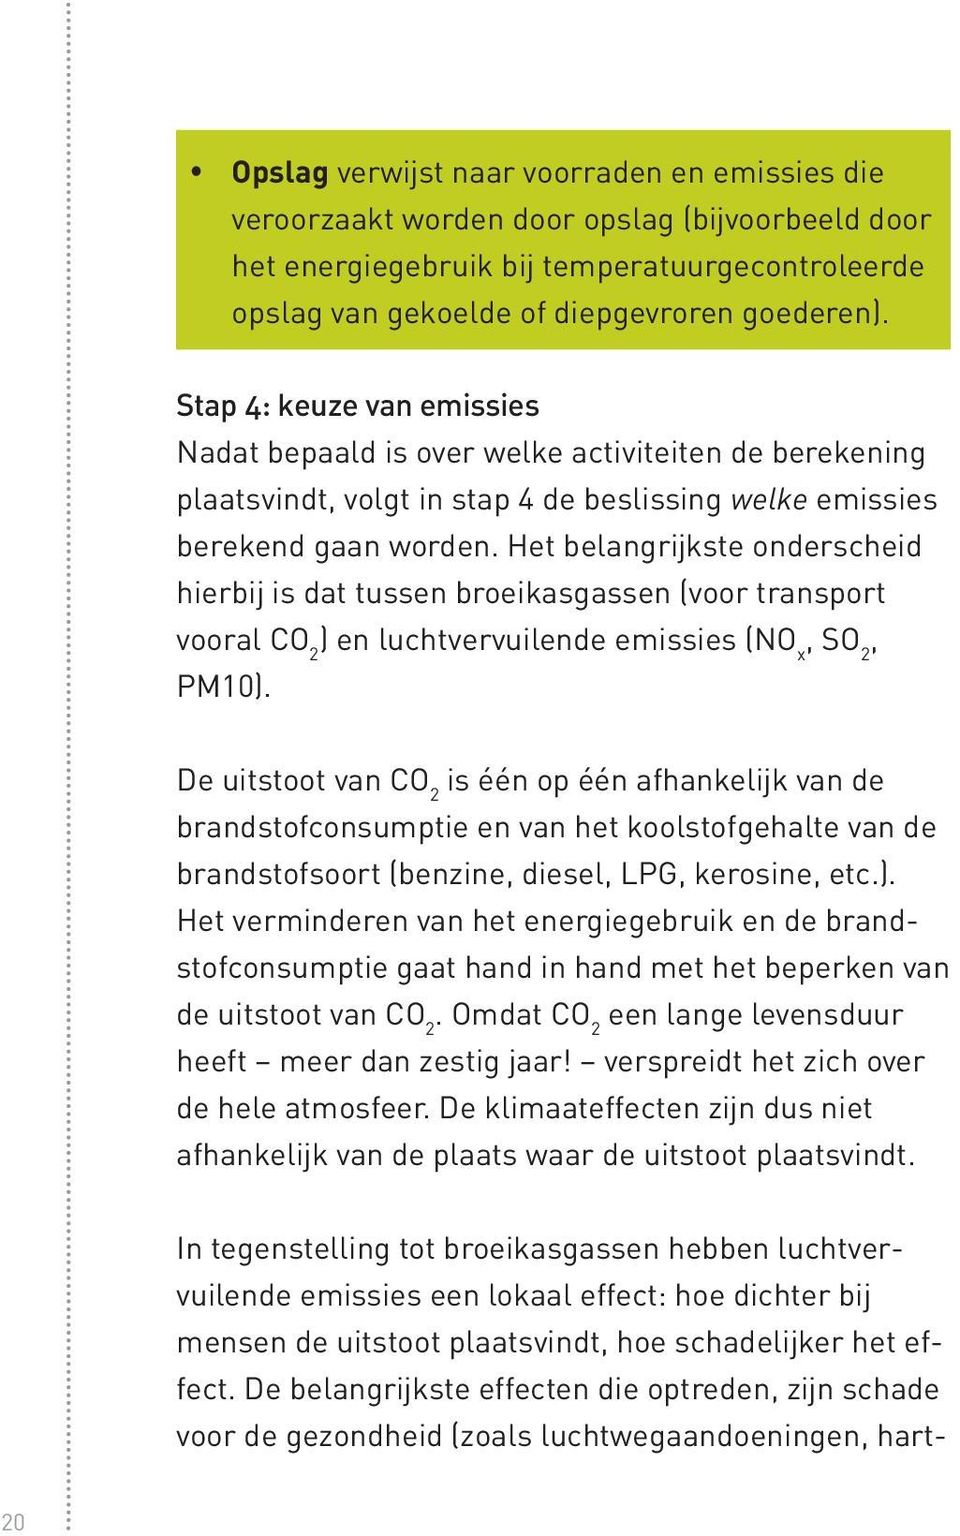 Het belangrijkste onderscheid hierbij is dat tussen broeikasgassen (voor transport vooral CO 2 ) en luchtvervuilende emissies (NO x, SO 2, PM10).